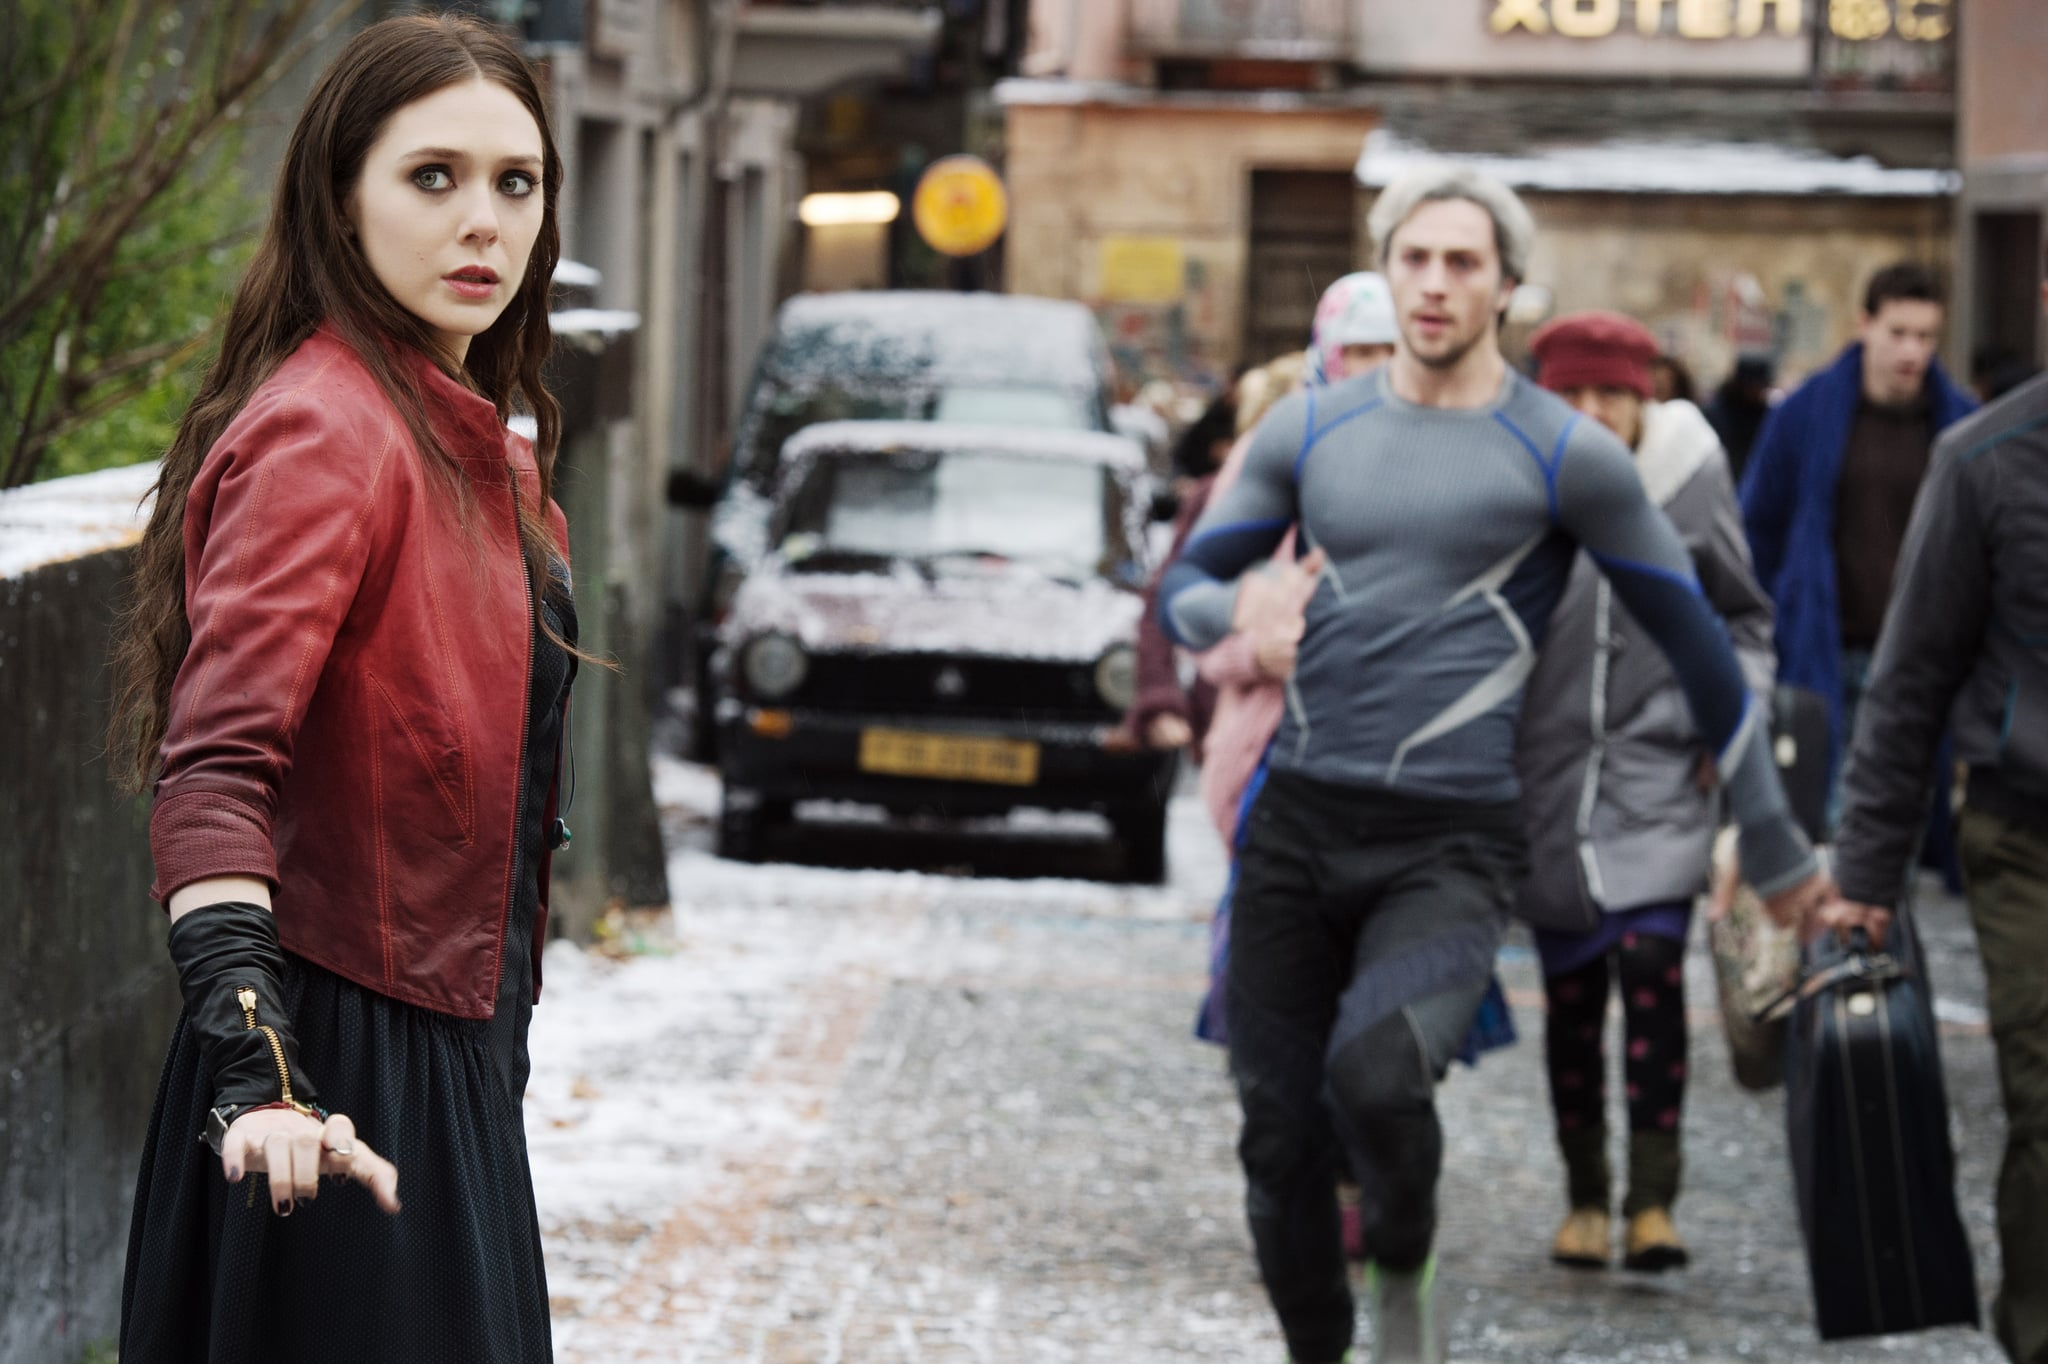 AVENGERS: AGE OF ULTRON, from left: Elizabeth Olsen as Scarlet Witch/Wanda Maximoff, Aaron Taylor-Johnson as Quicksilver/Pietro Maximoff, 2015. ph: Jay Maidment /  Walt Disney Studios Motion Pictures / courtesy Everett Collection